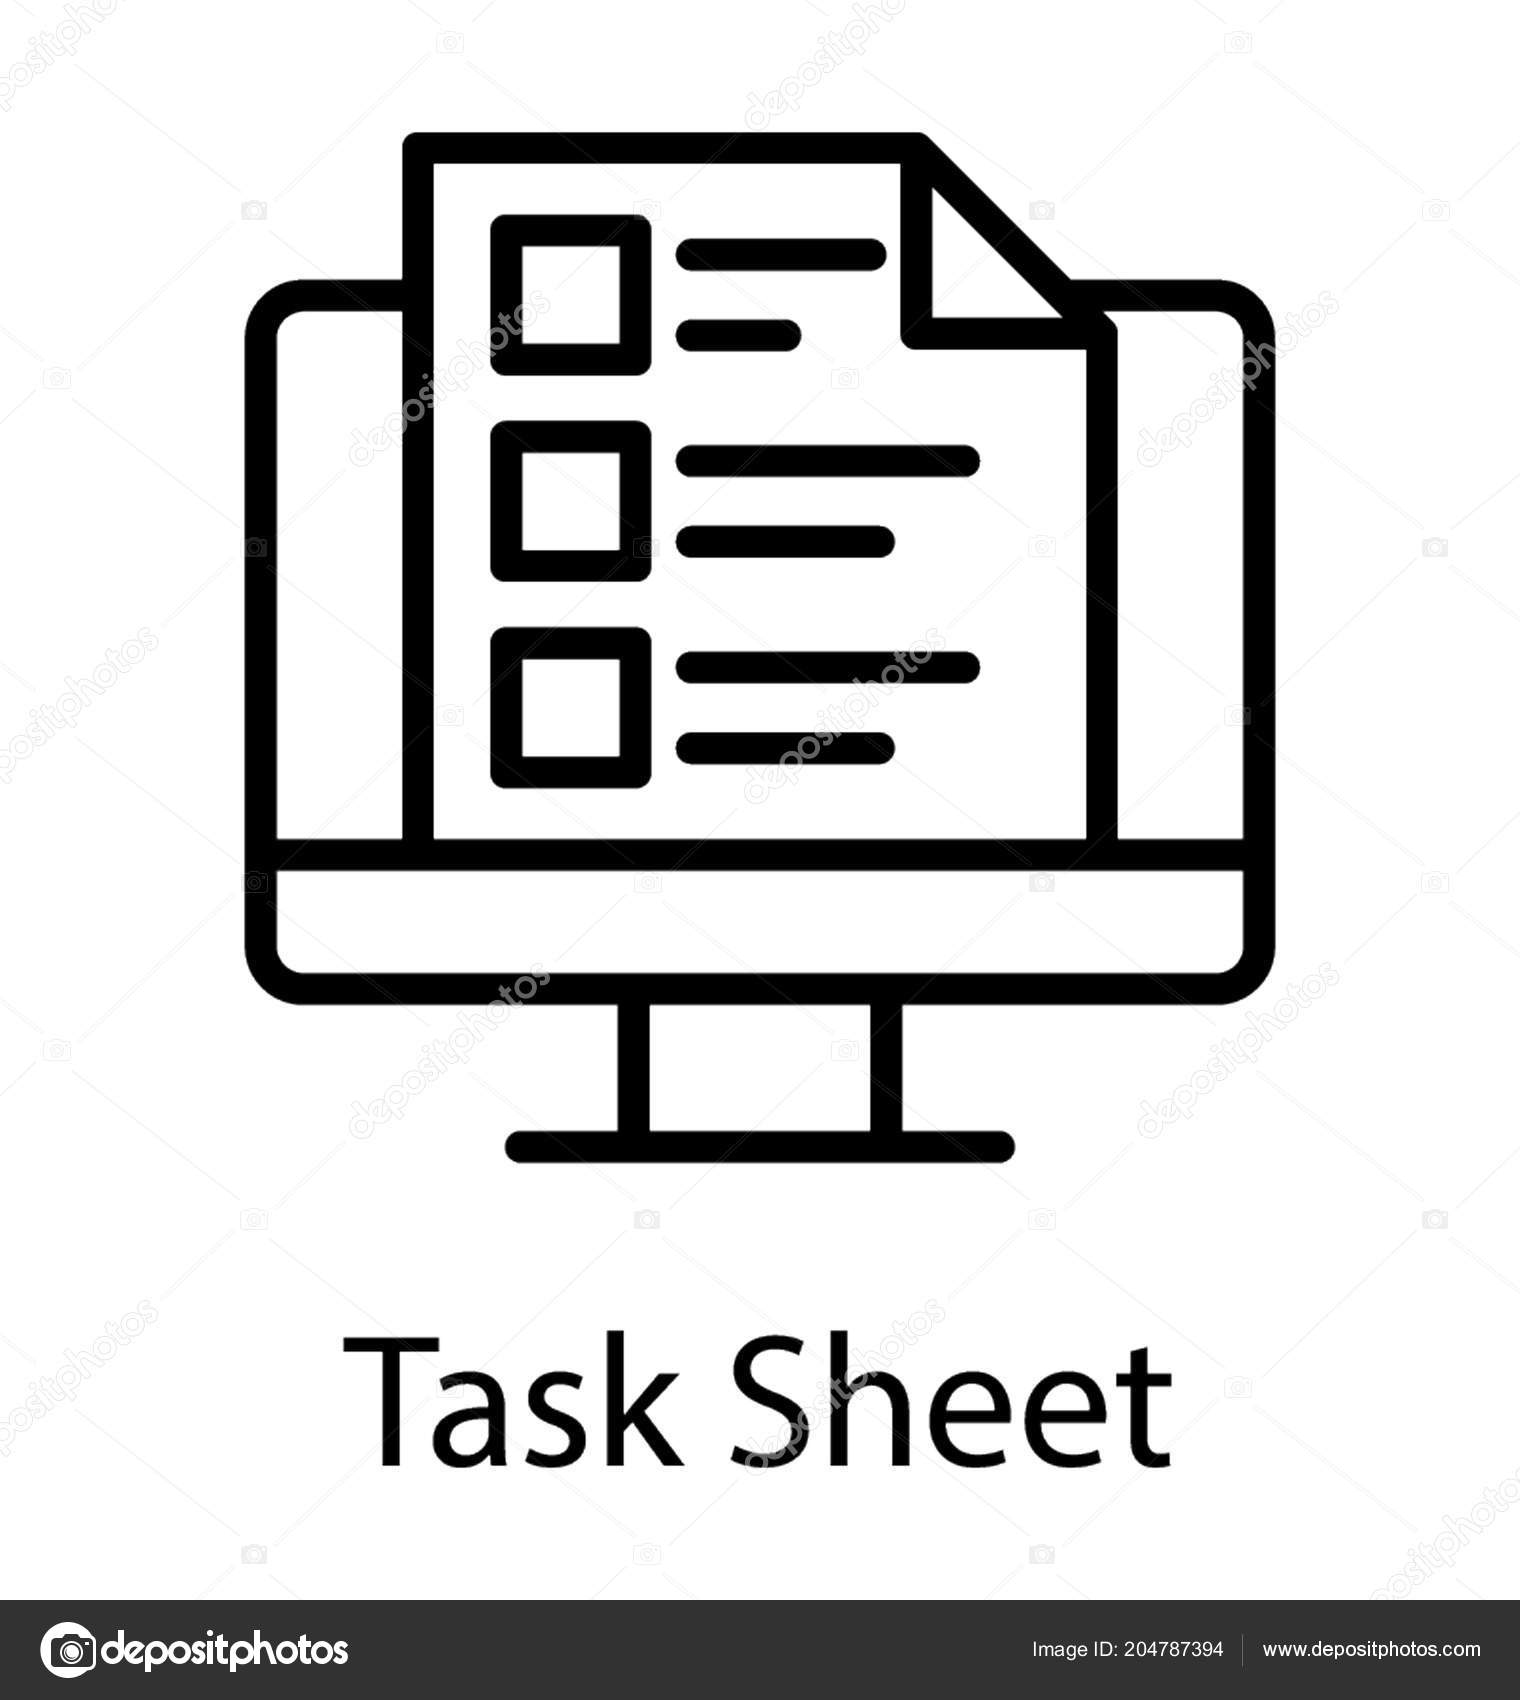 laptop screen list showing task sheet icon stock vector